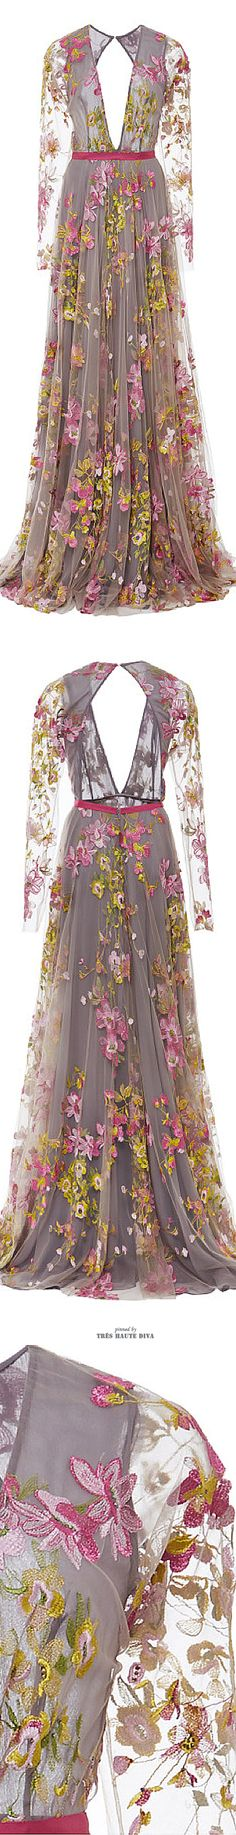 Naeem Khan Floral Embroidered Long Sleeve Gown ♔ SS 2015 jaglady